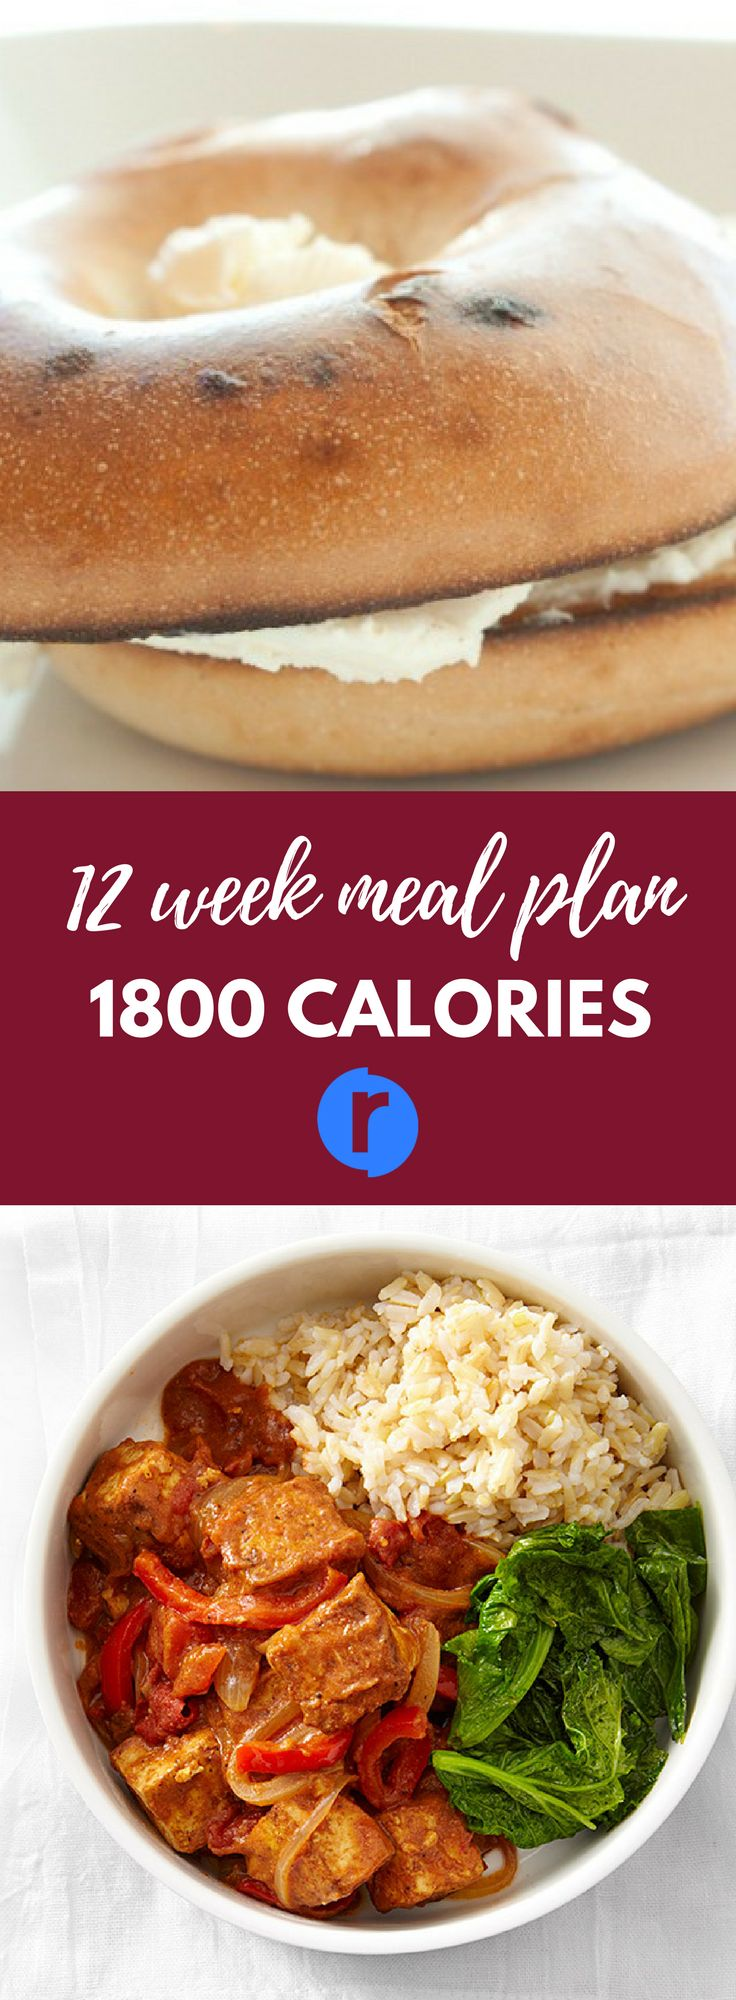 Lifestyle Routines: 12 week meal plan 1800 calories. An 1800 calorie diet plan calls for three meals and three snacks each day to provide your body with sustained energy. Find it at:https://routinr.org/routines/12-week-meal-plan-1800-calories